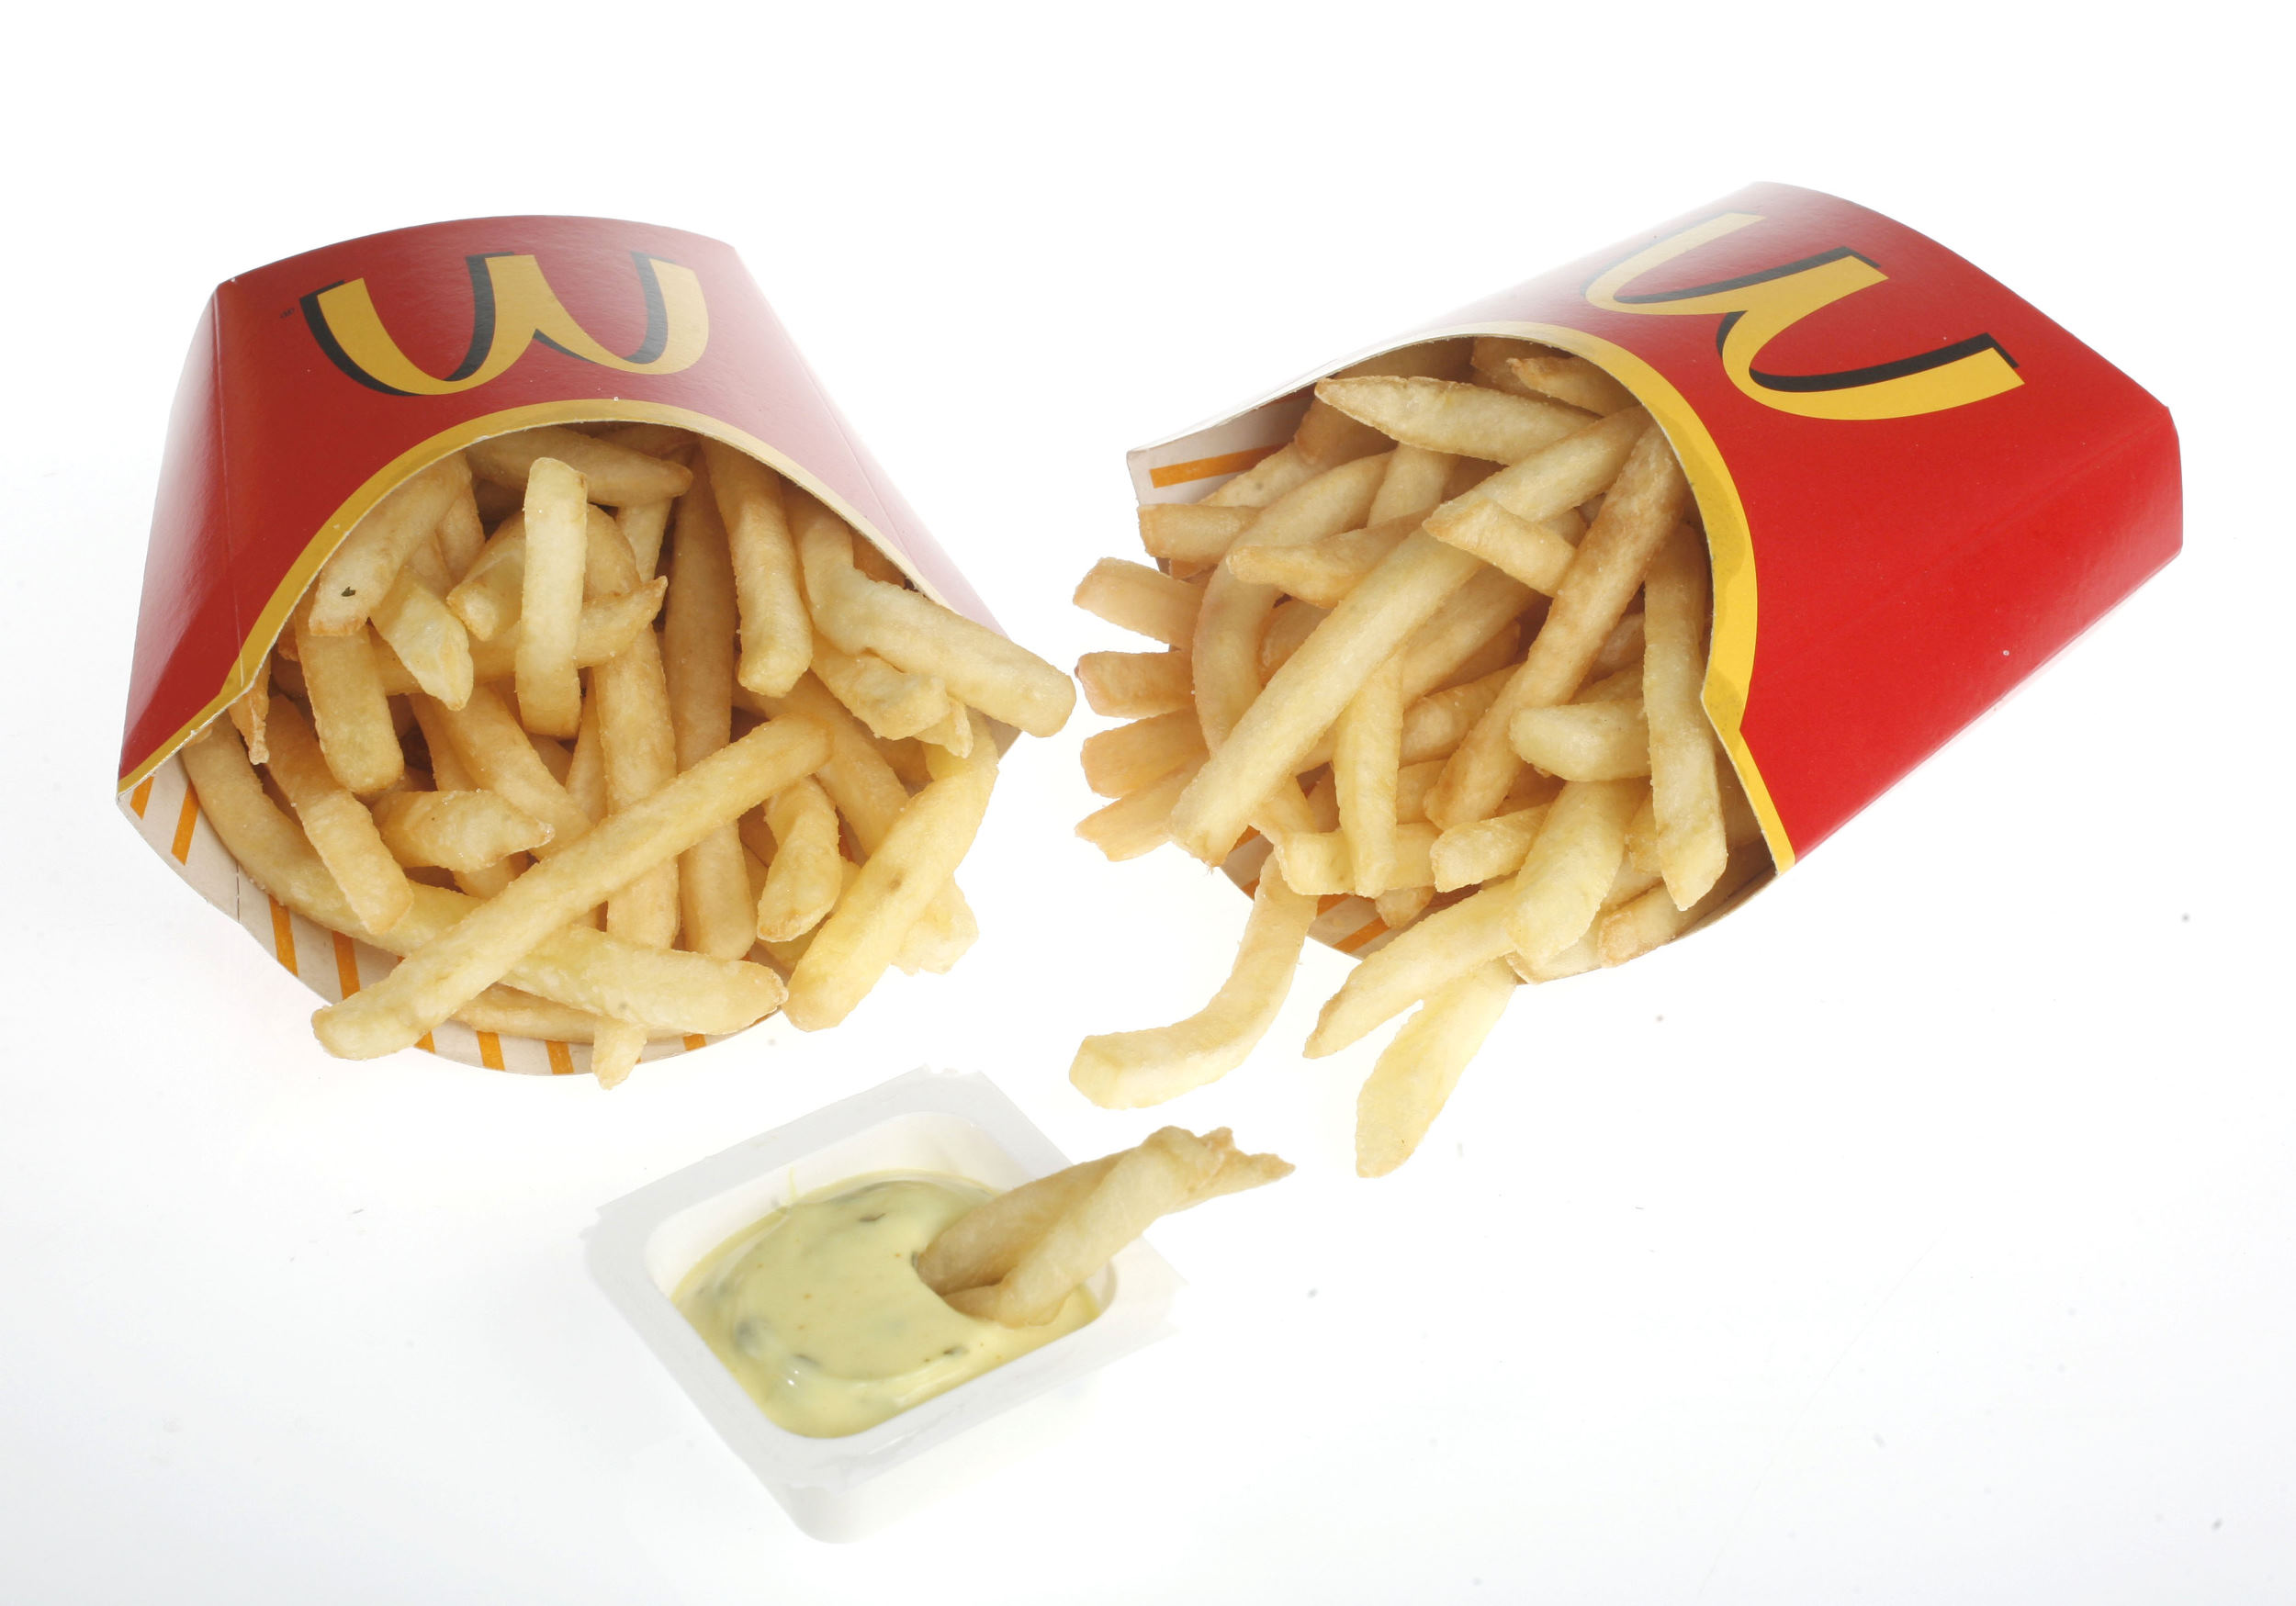 McDonalds fastfood junkfood patat fries fritessaus ongezond snack